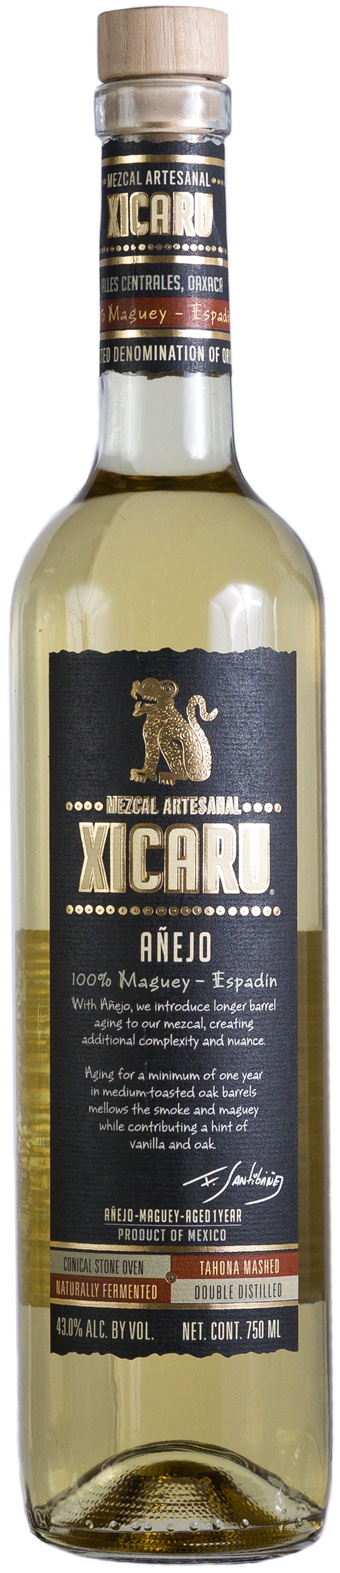 xicaru anejo bottle